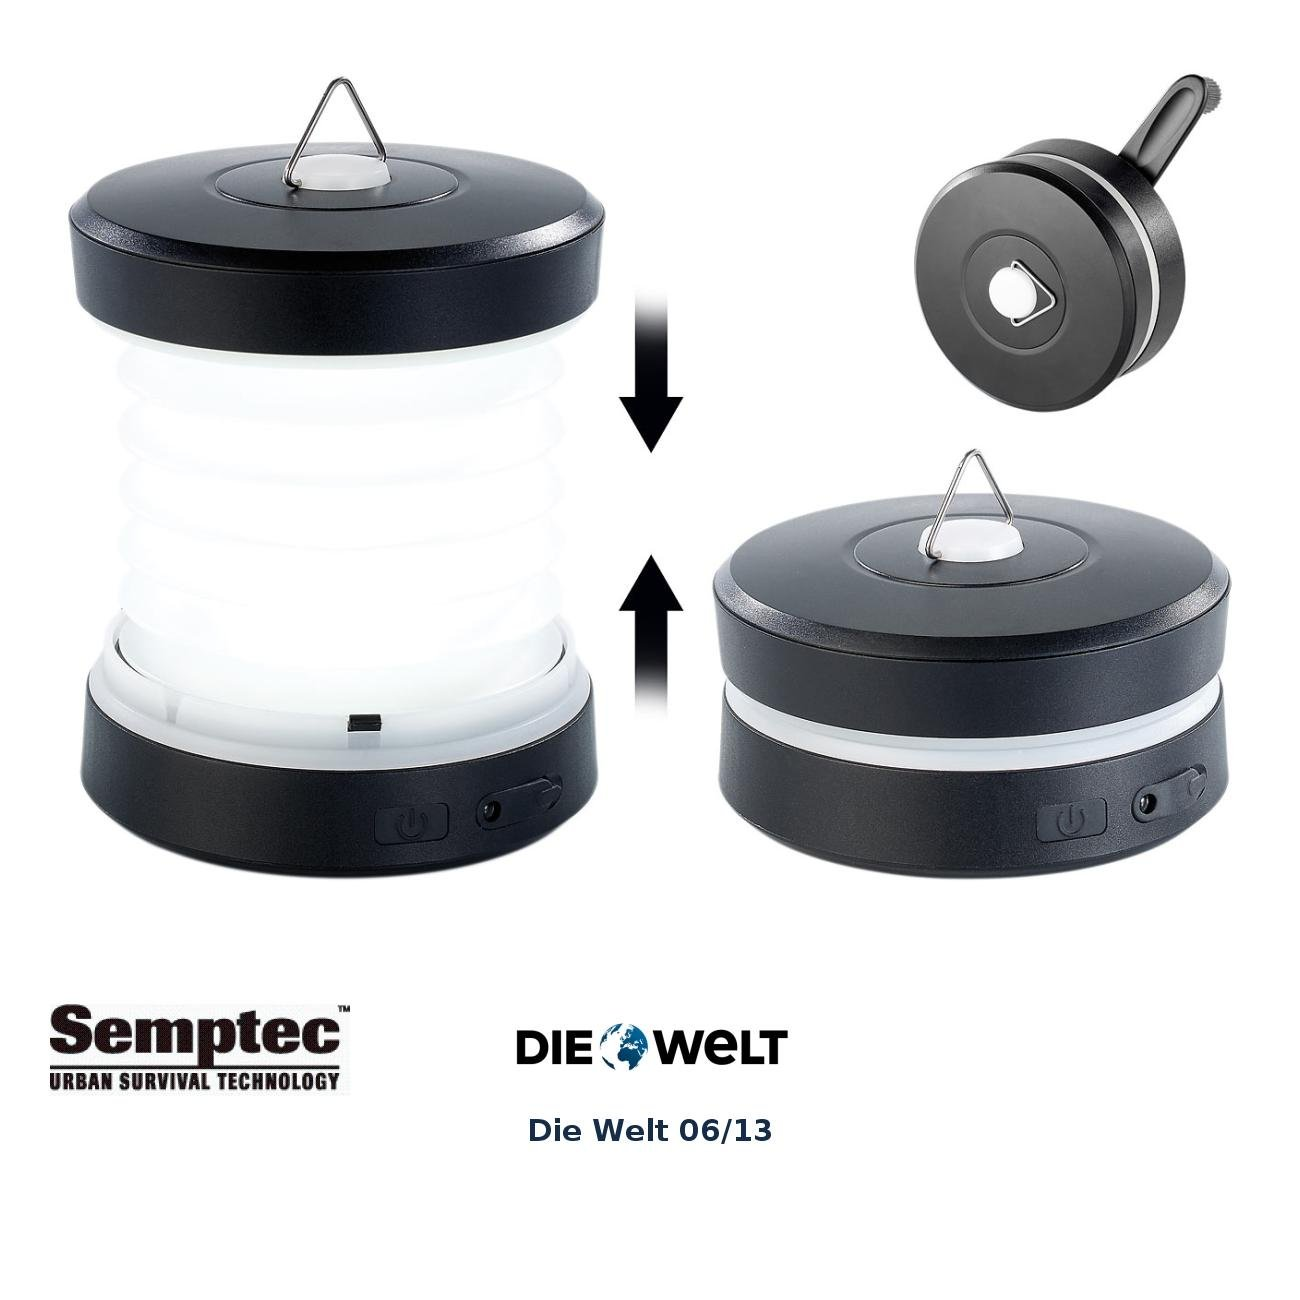 Semptec Urban Survival Technology Camping Lampen: Faltbare Dynamo Campingleuchte mit Kurbel Handy Notladefunktion (Dynamo Lampen)